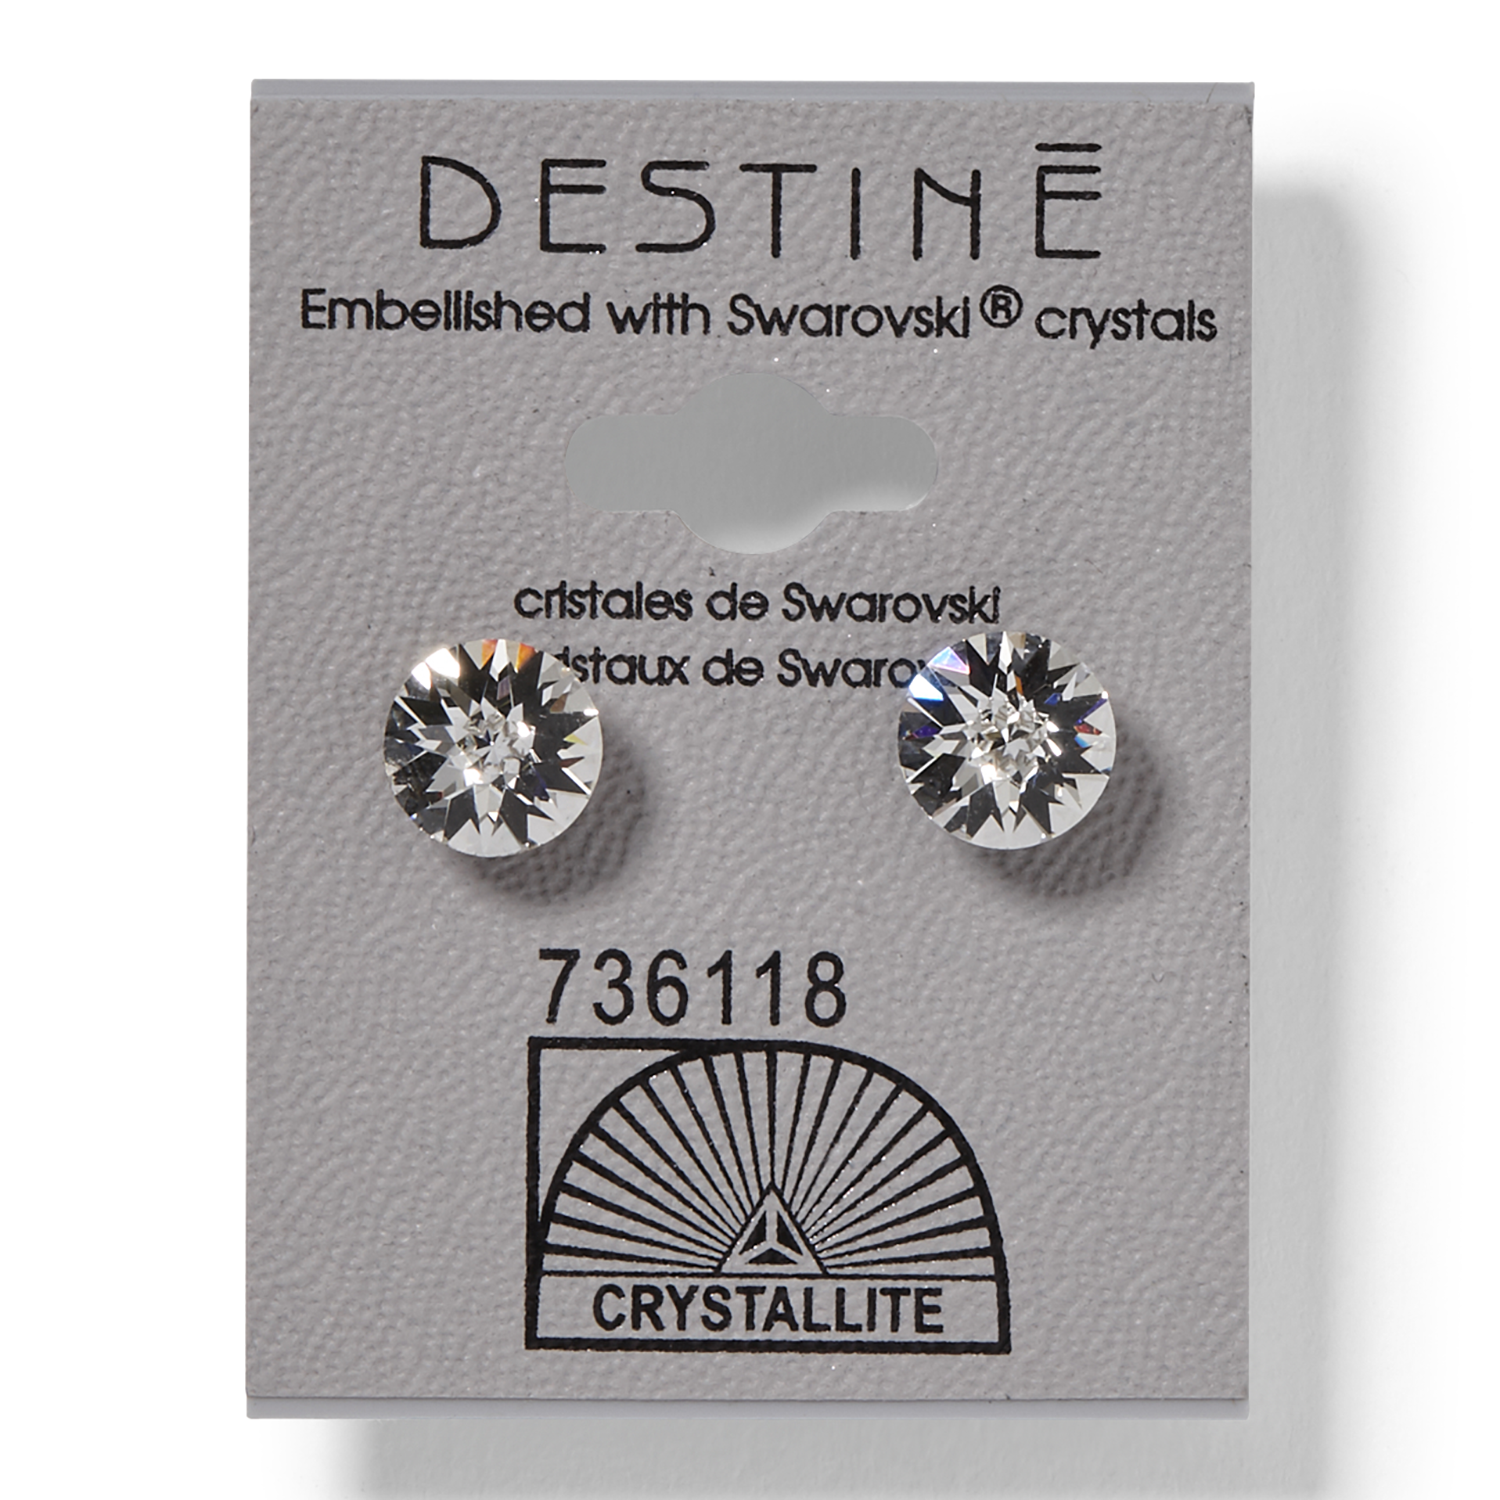 Sally Beauty coupon: Destine Double Diamond Cut Earrings